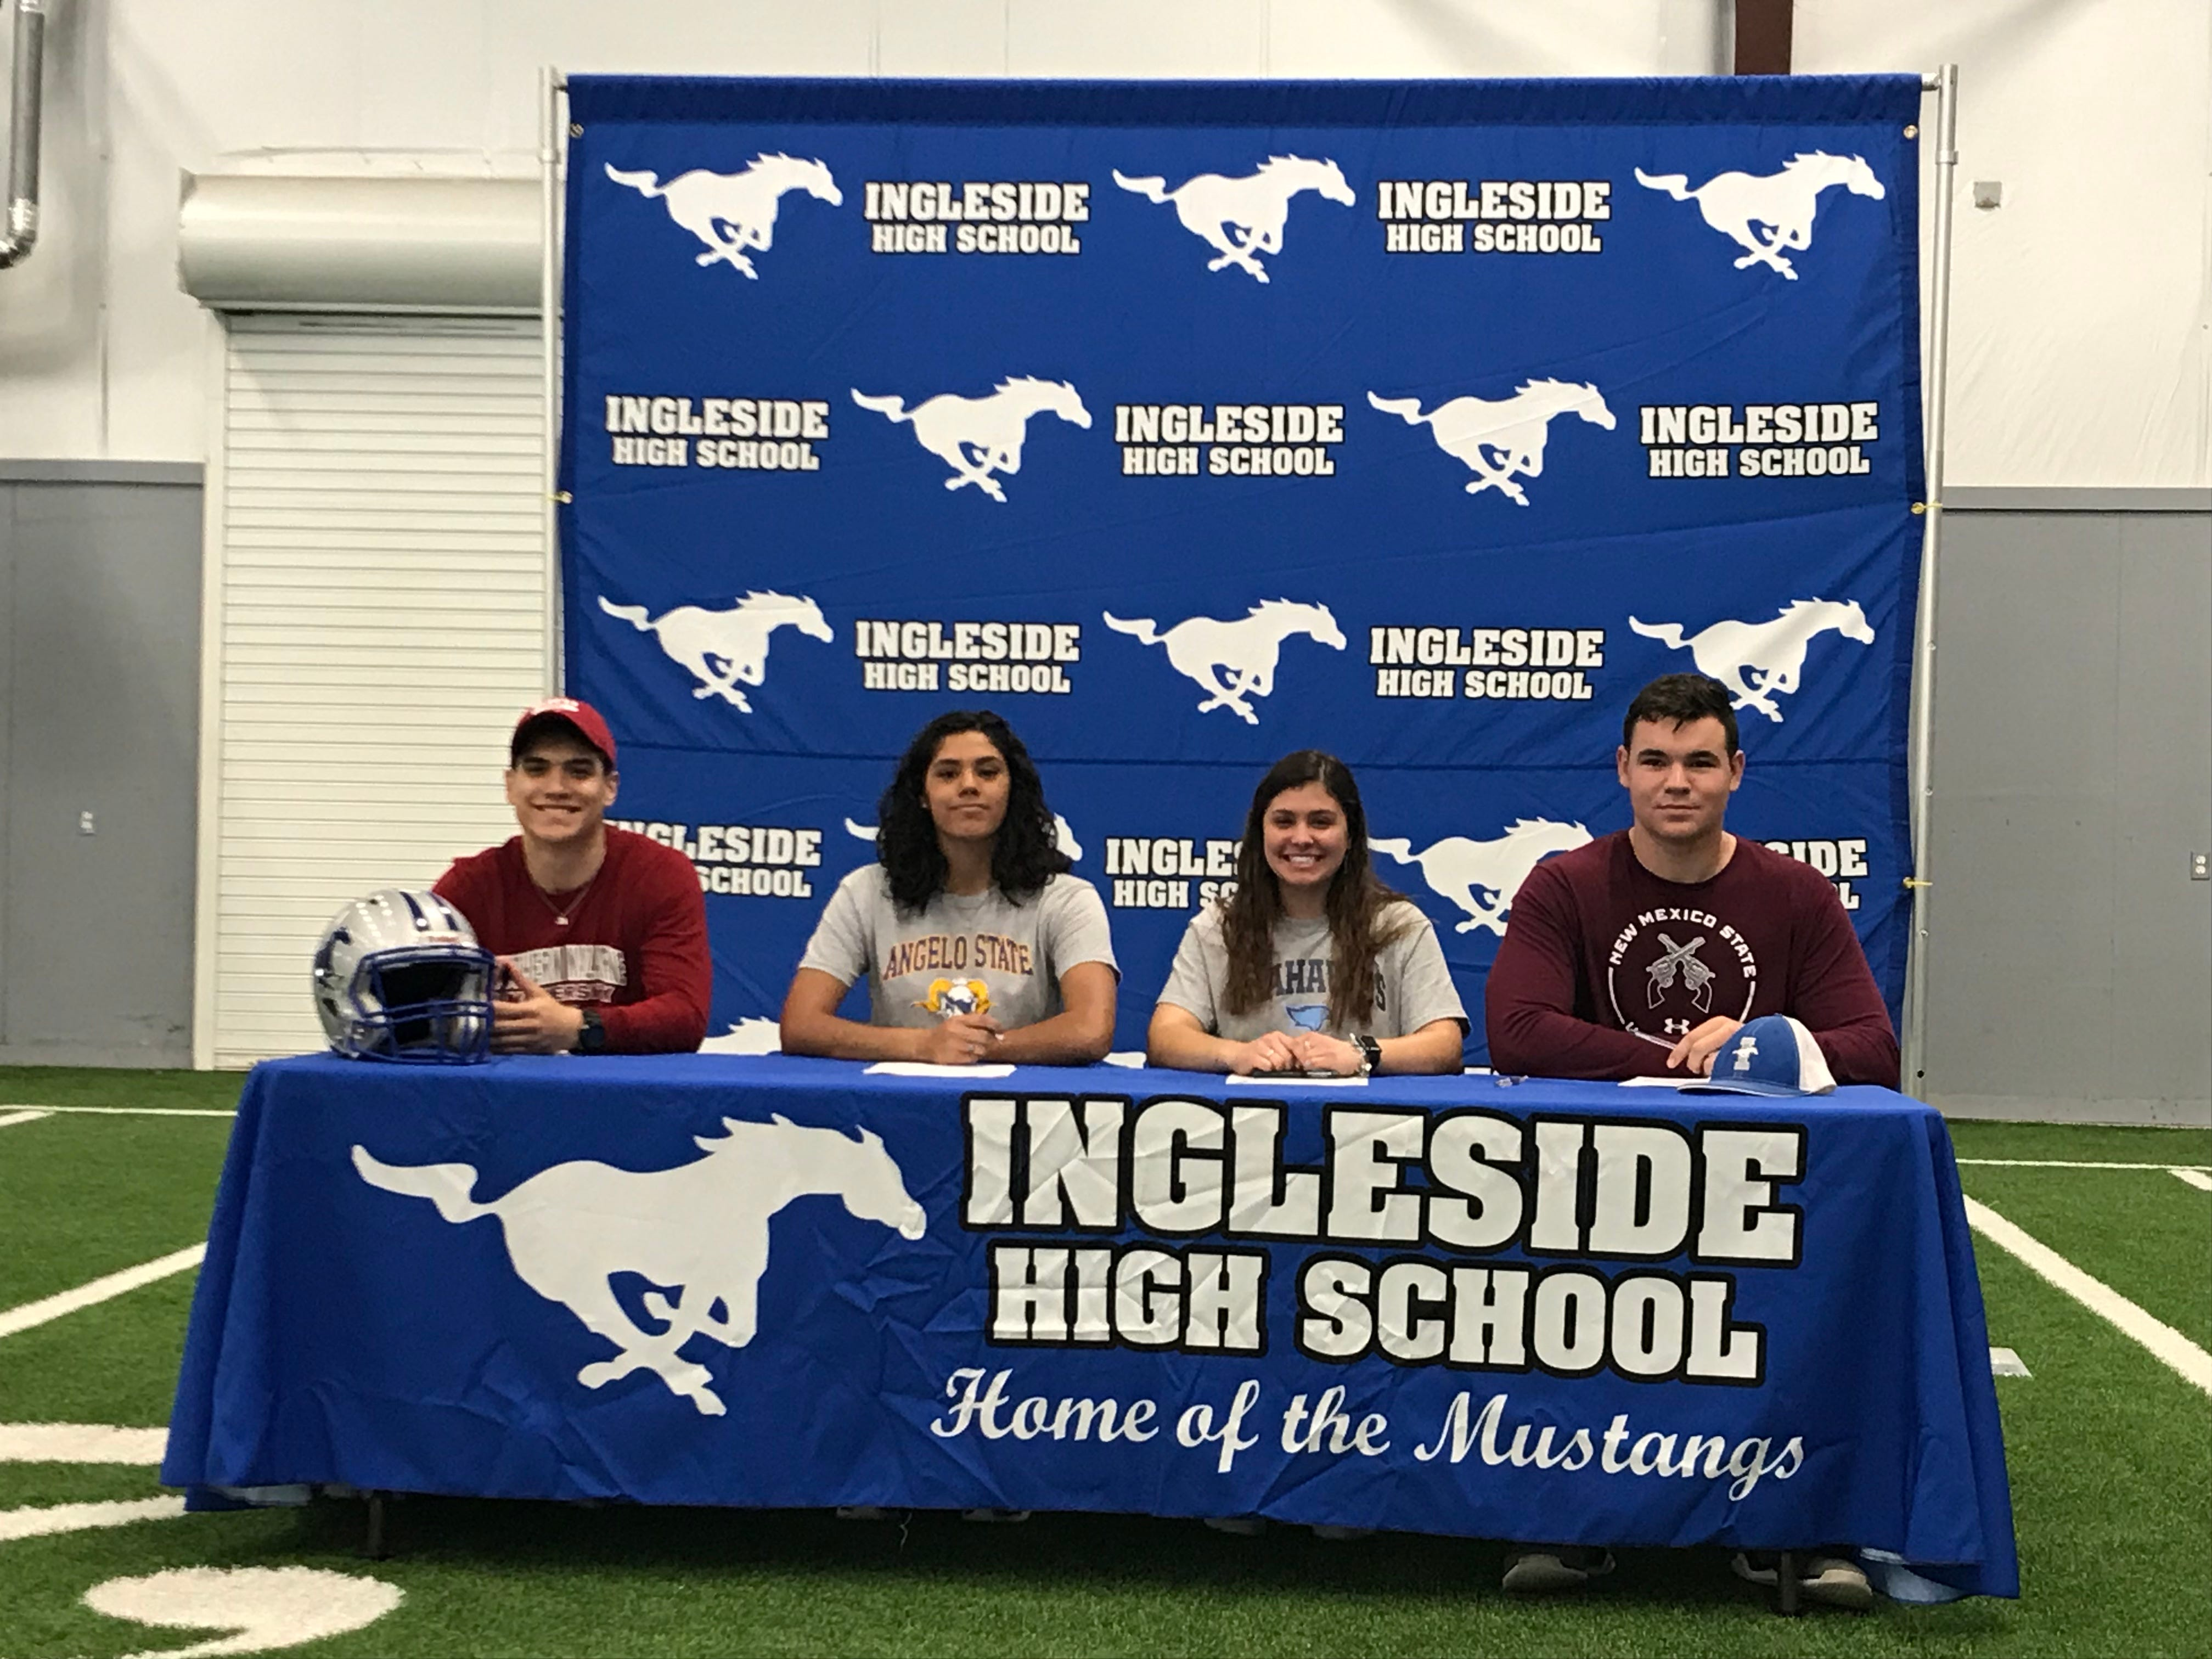 Ingleside athletes Robert Eppard (Southern Nazerene, football), Abby Perez (Angelo State, track & field), Maleia Taylor (Lamar State College, softball) and Marlin Johnson (football, New Mexico State) signed letters of intent on Wednesday, Feb. 6, 2019, at the Ingleside High School Sports Complex.